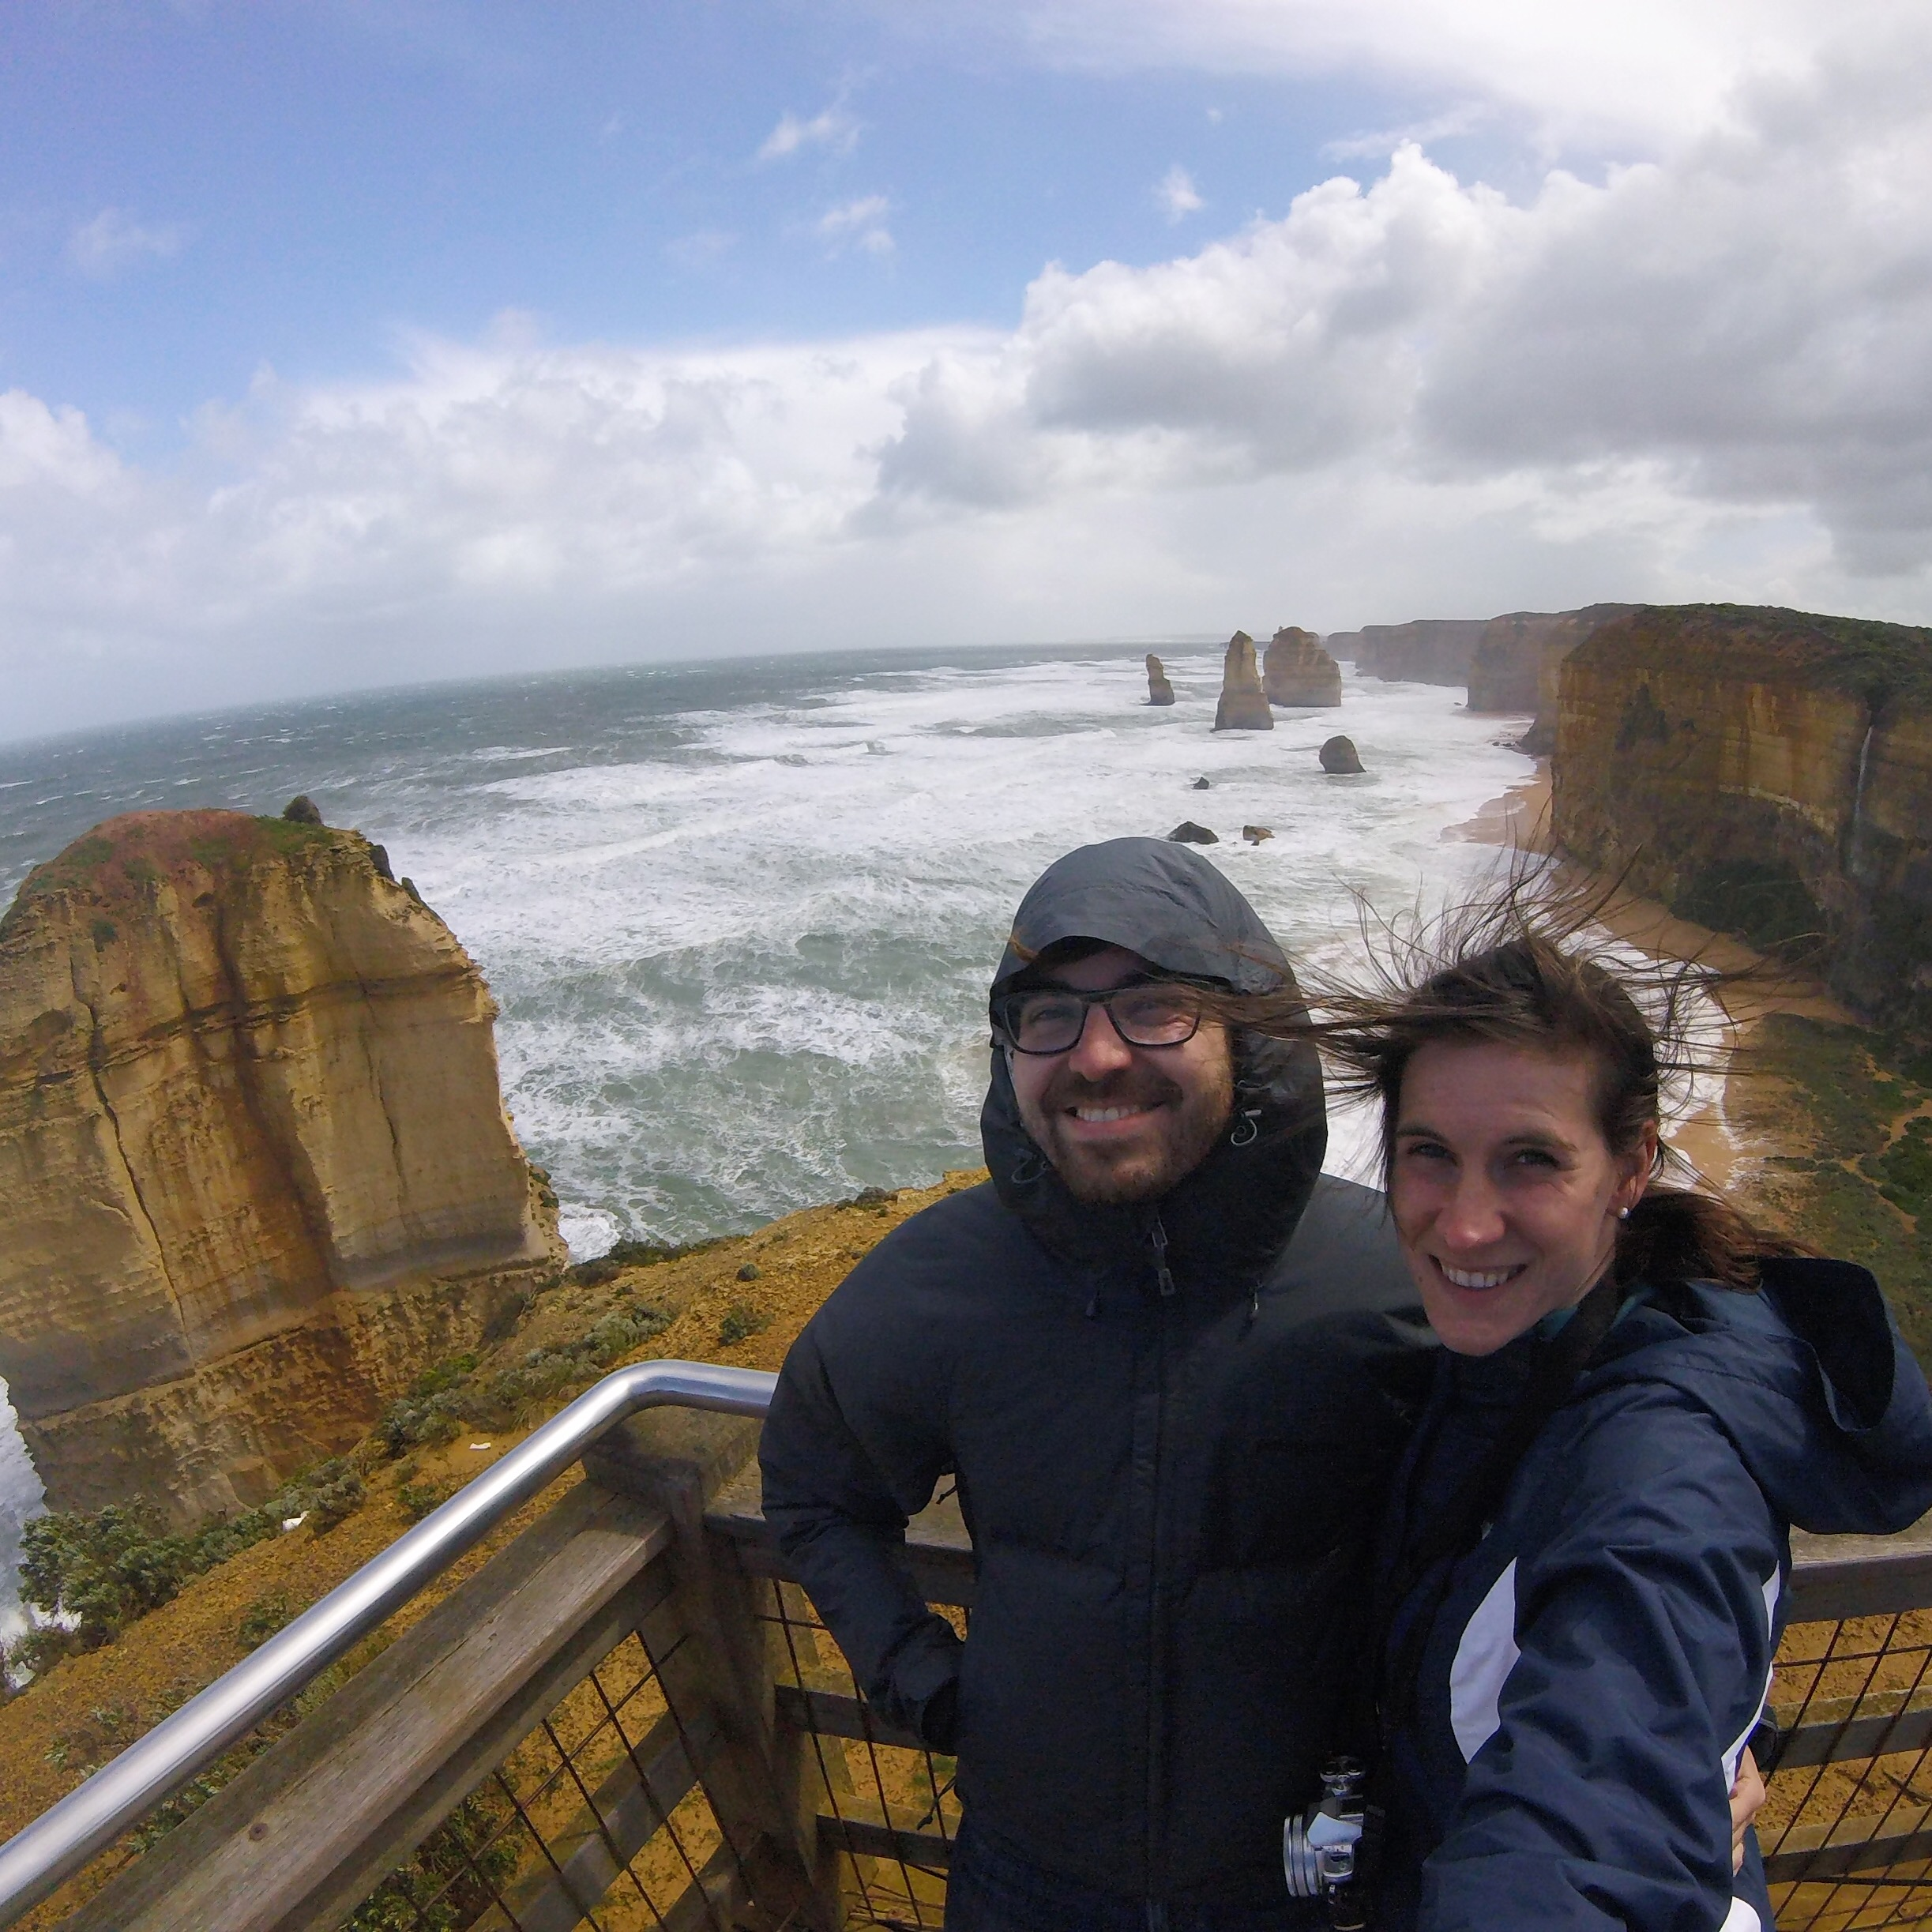 Windy day at the 12 Apostles